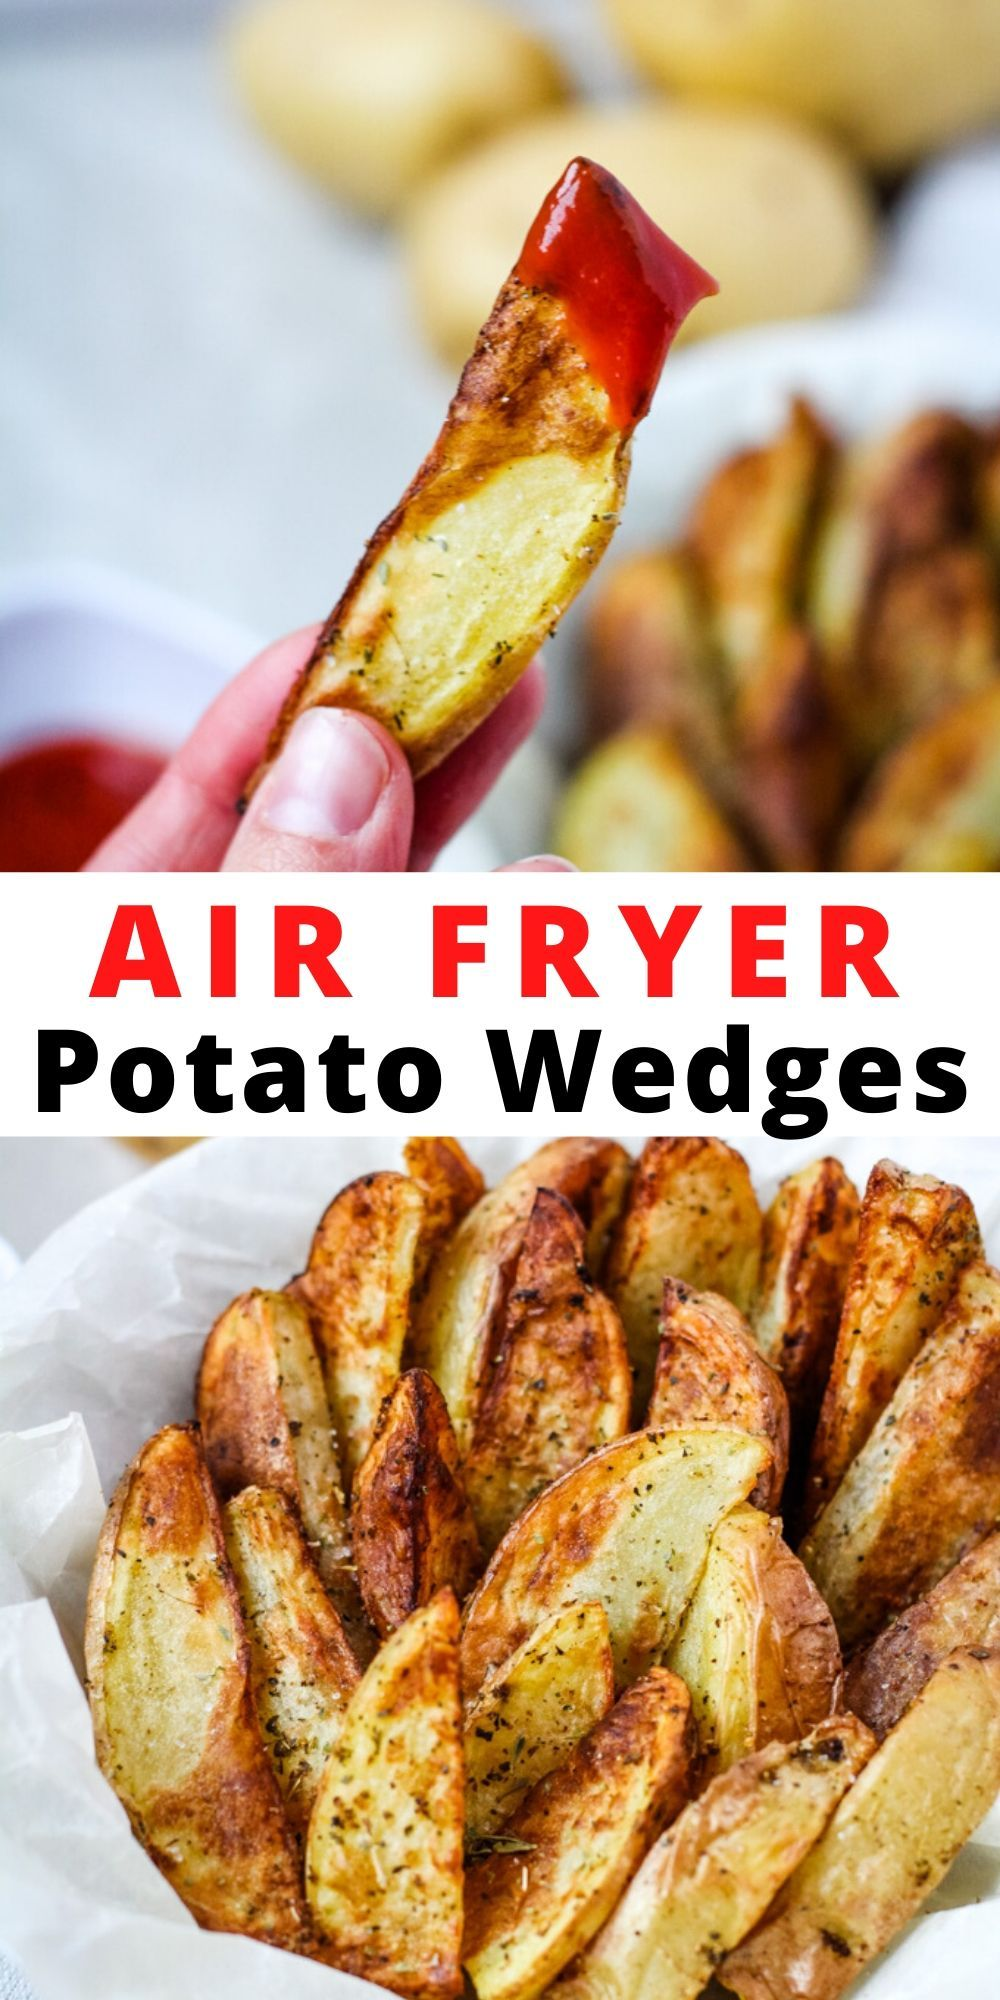 These crispy easy to make Air Fryer Potato Wedges are